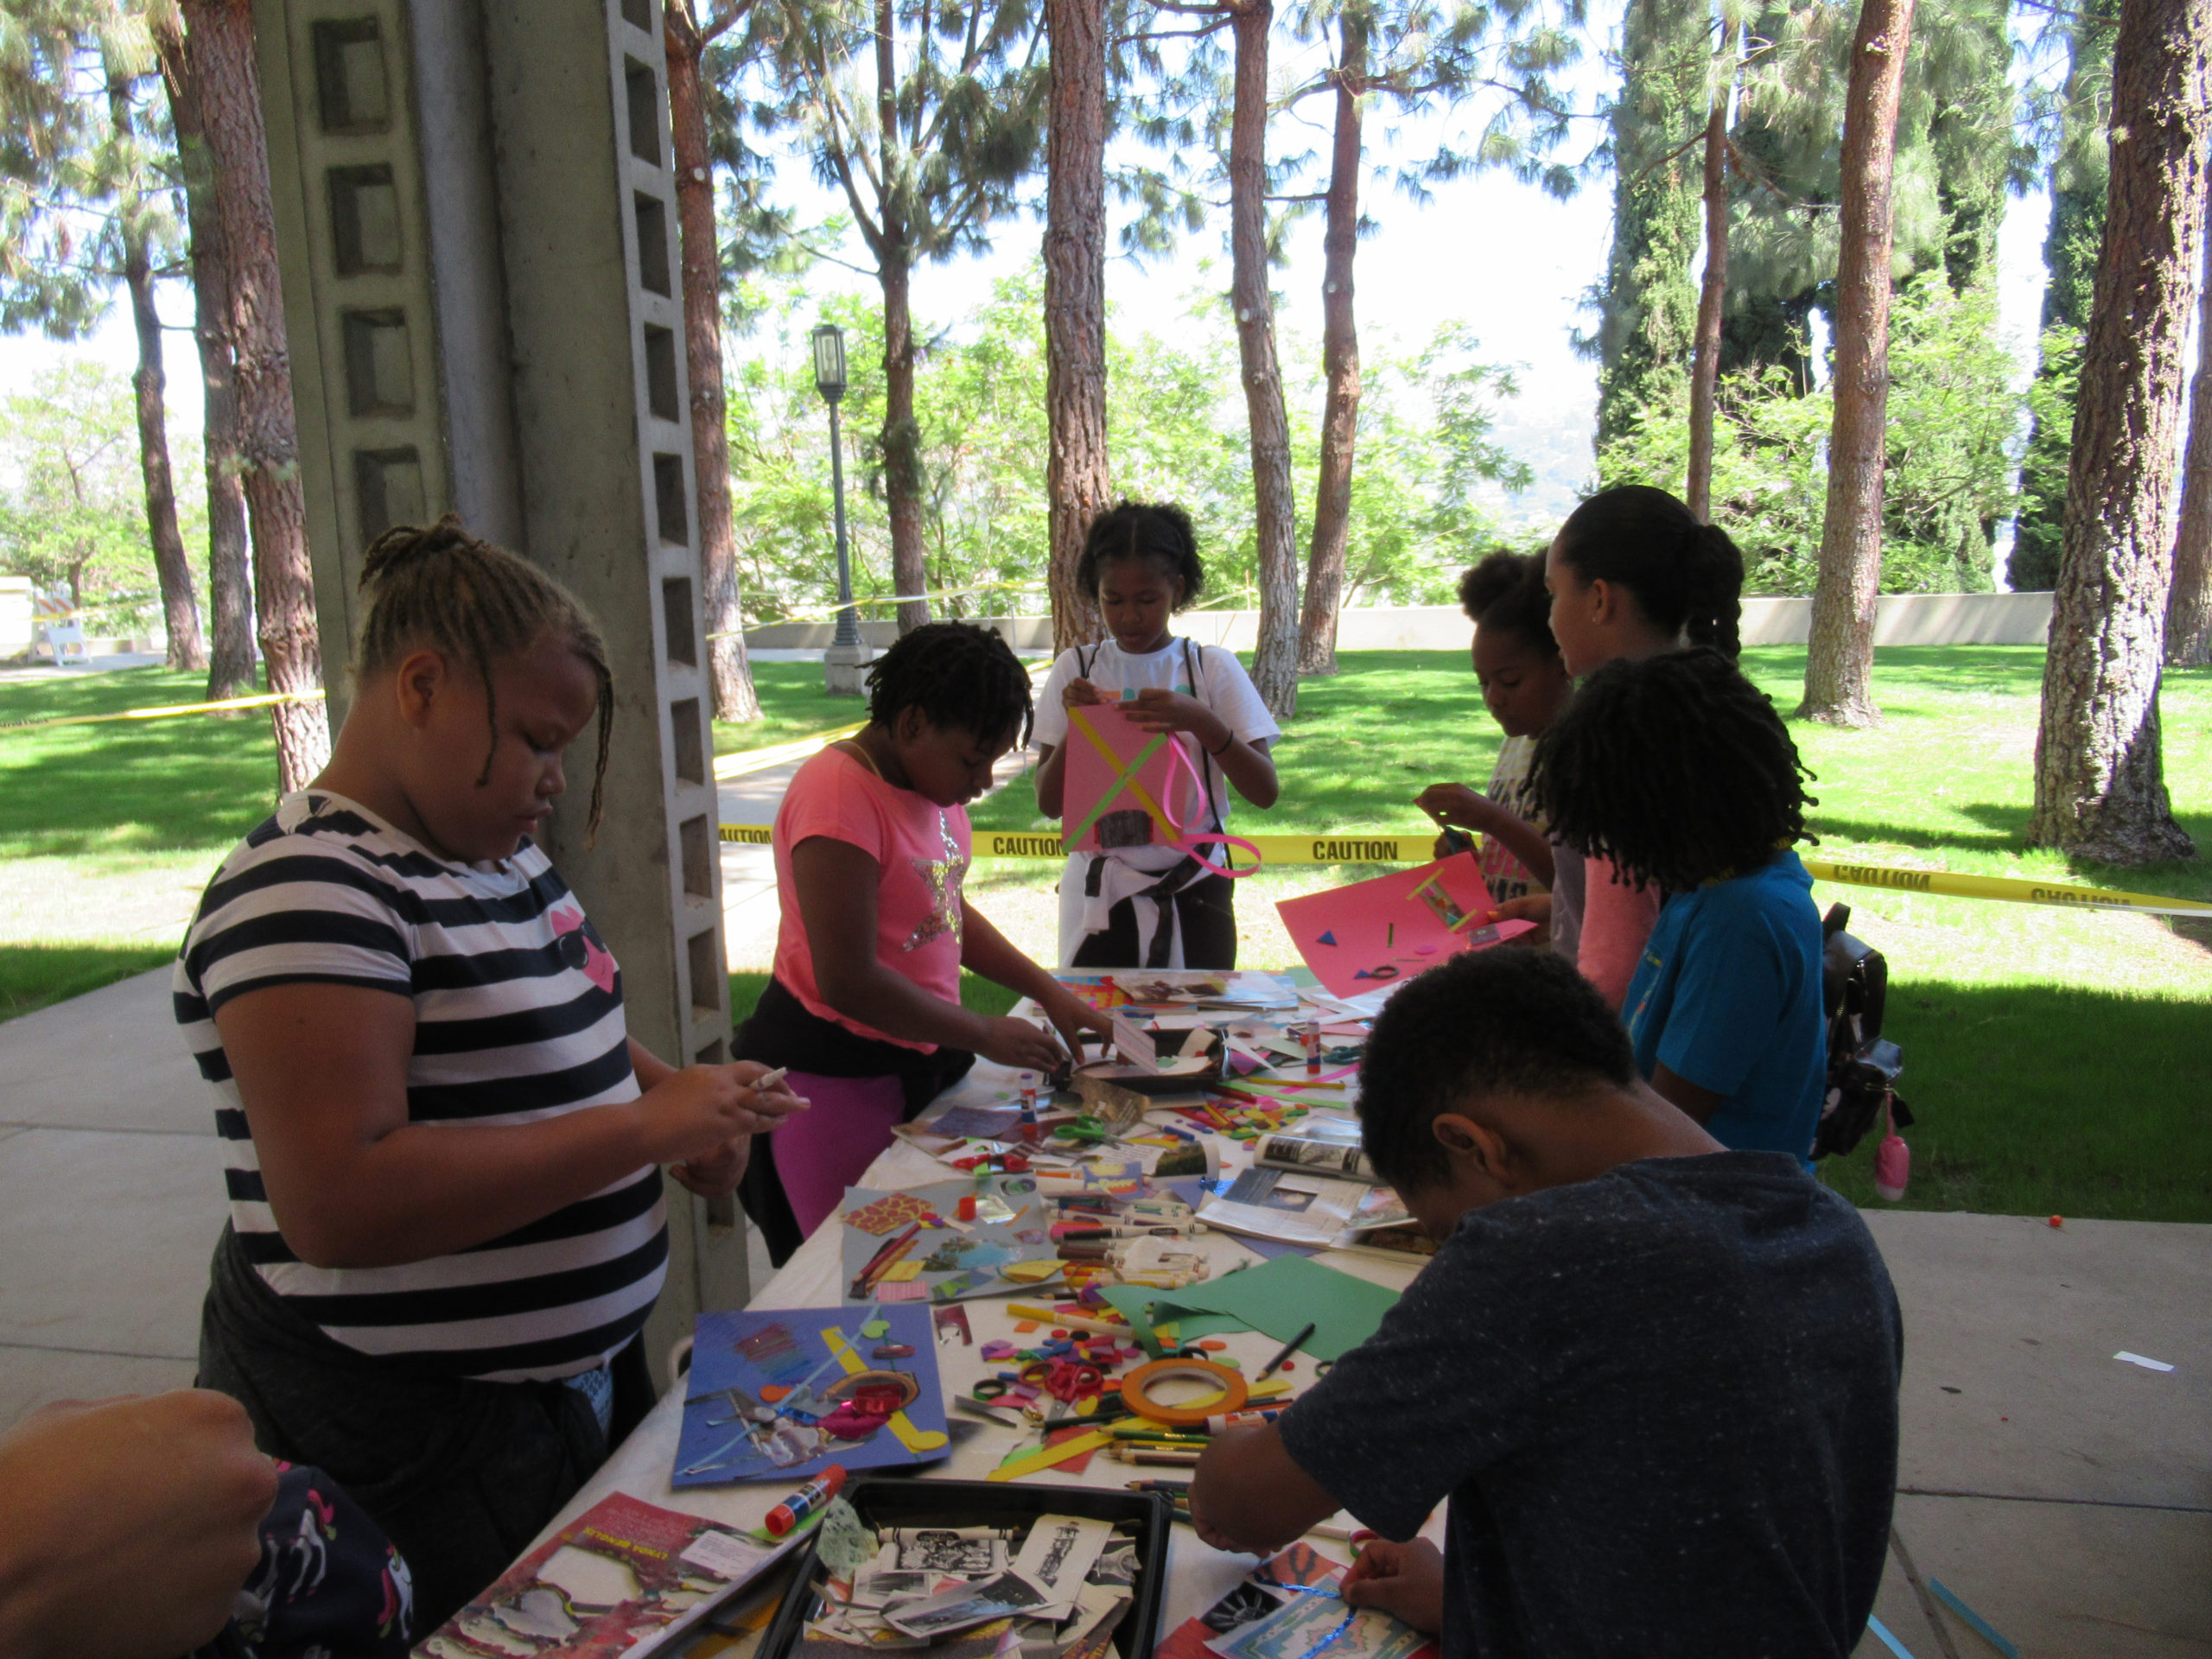 A group of seven young students are participating in an art-making activity involving bright colored paper, stickers, markers and other materials.